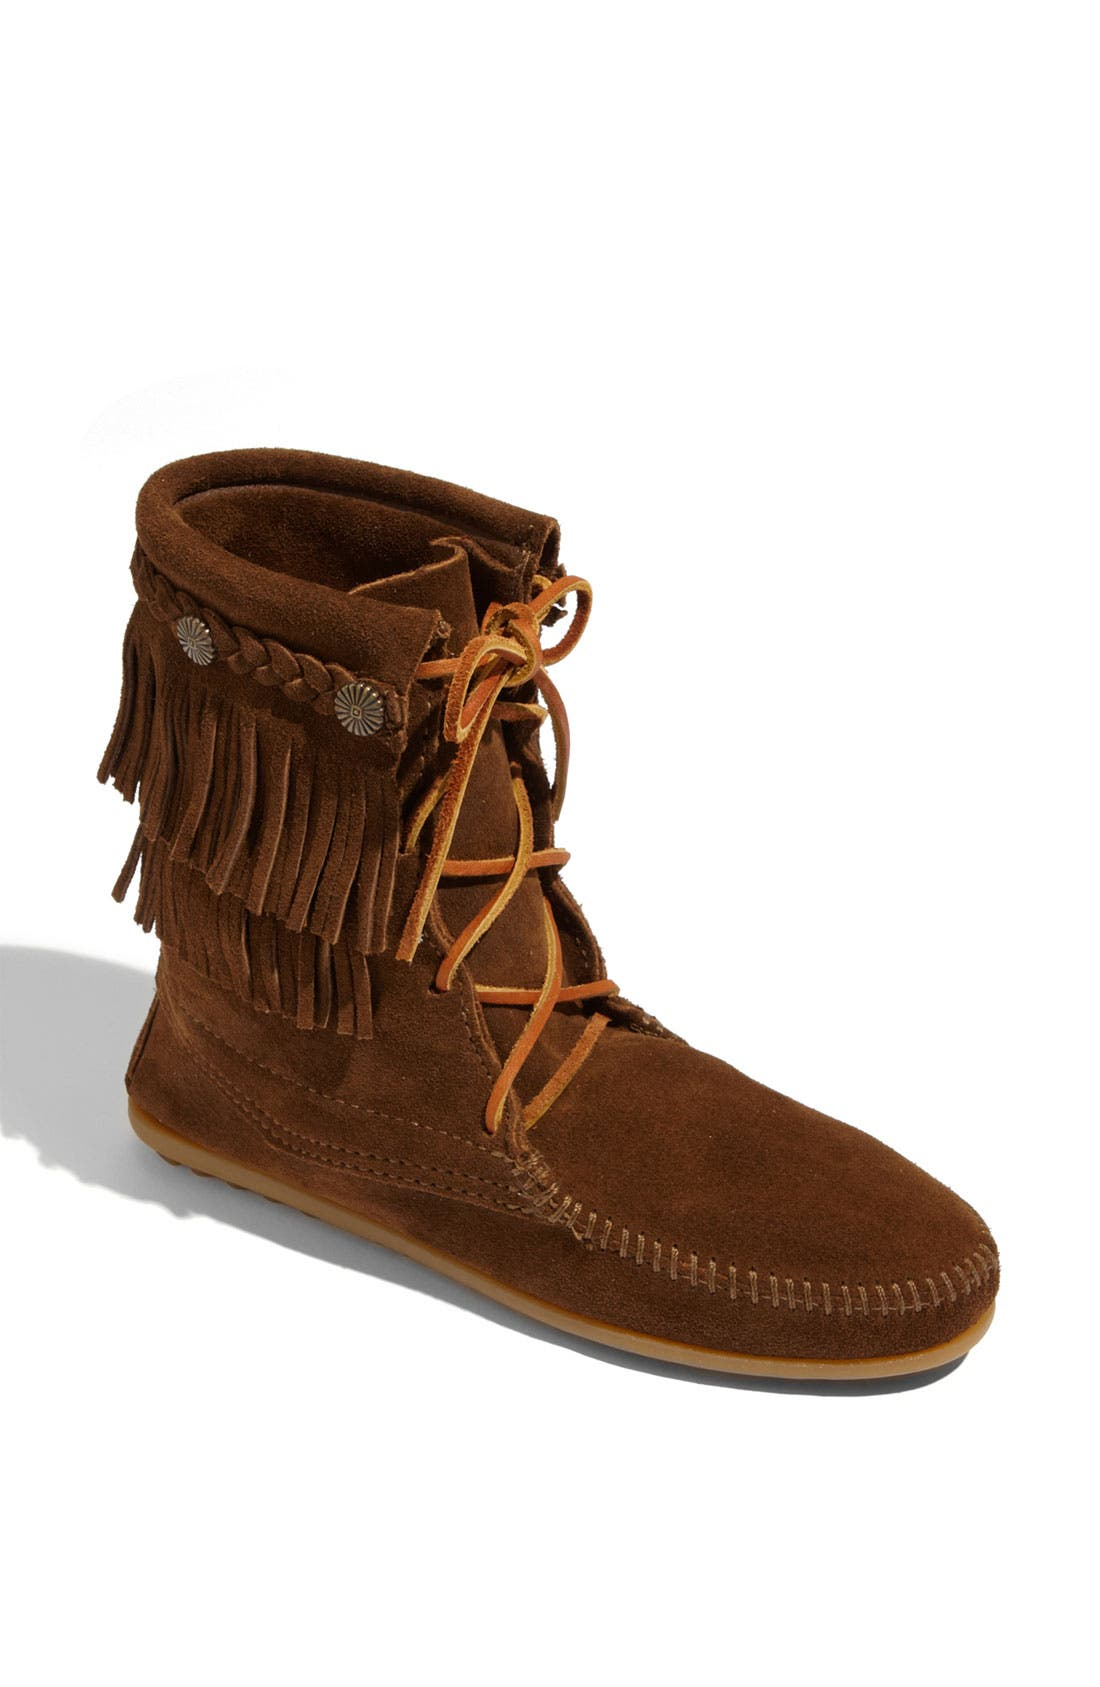 'Tramper' Double Fringe Moccasin Boot,                             Main thumbnail 1, color,                             Dusty Brown